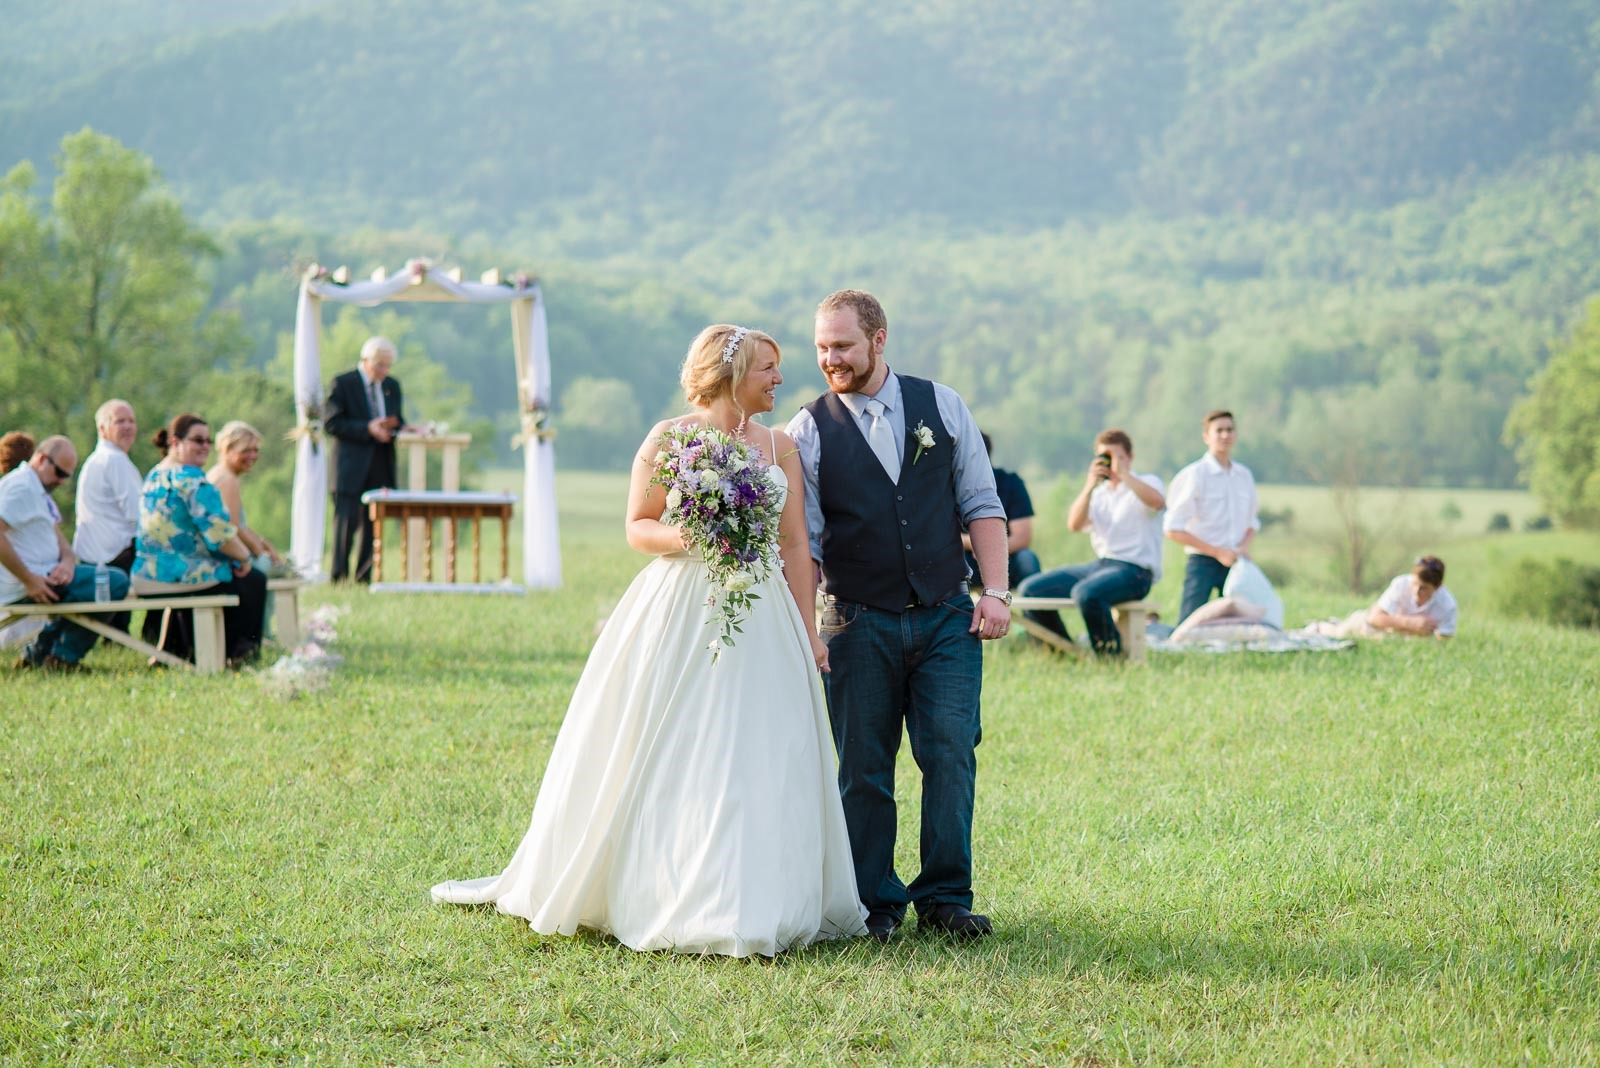 Bride with purple waterfalls bouquet and groom with navy vest and light blue shirt at cades cove wedding in the mountains